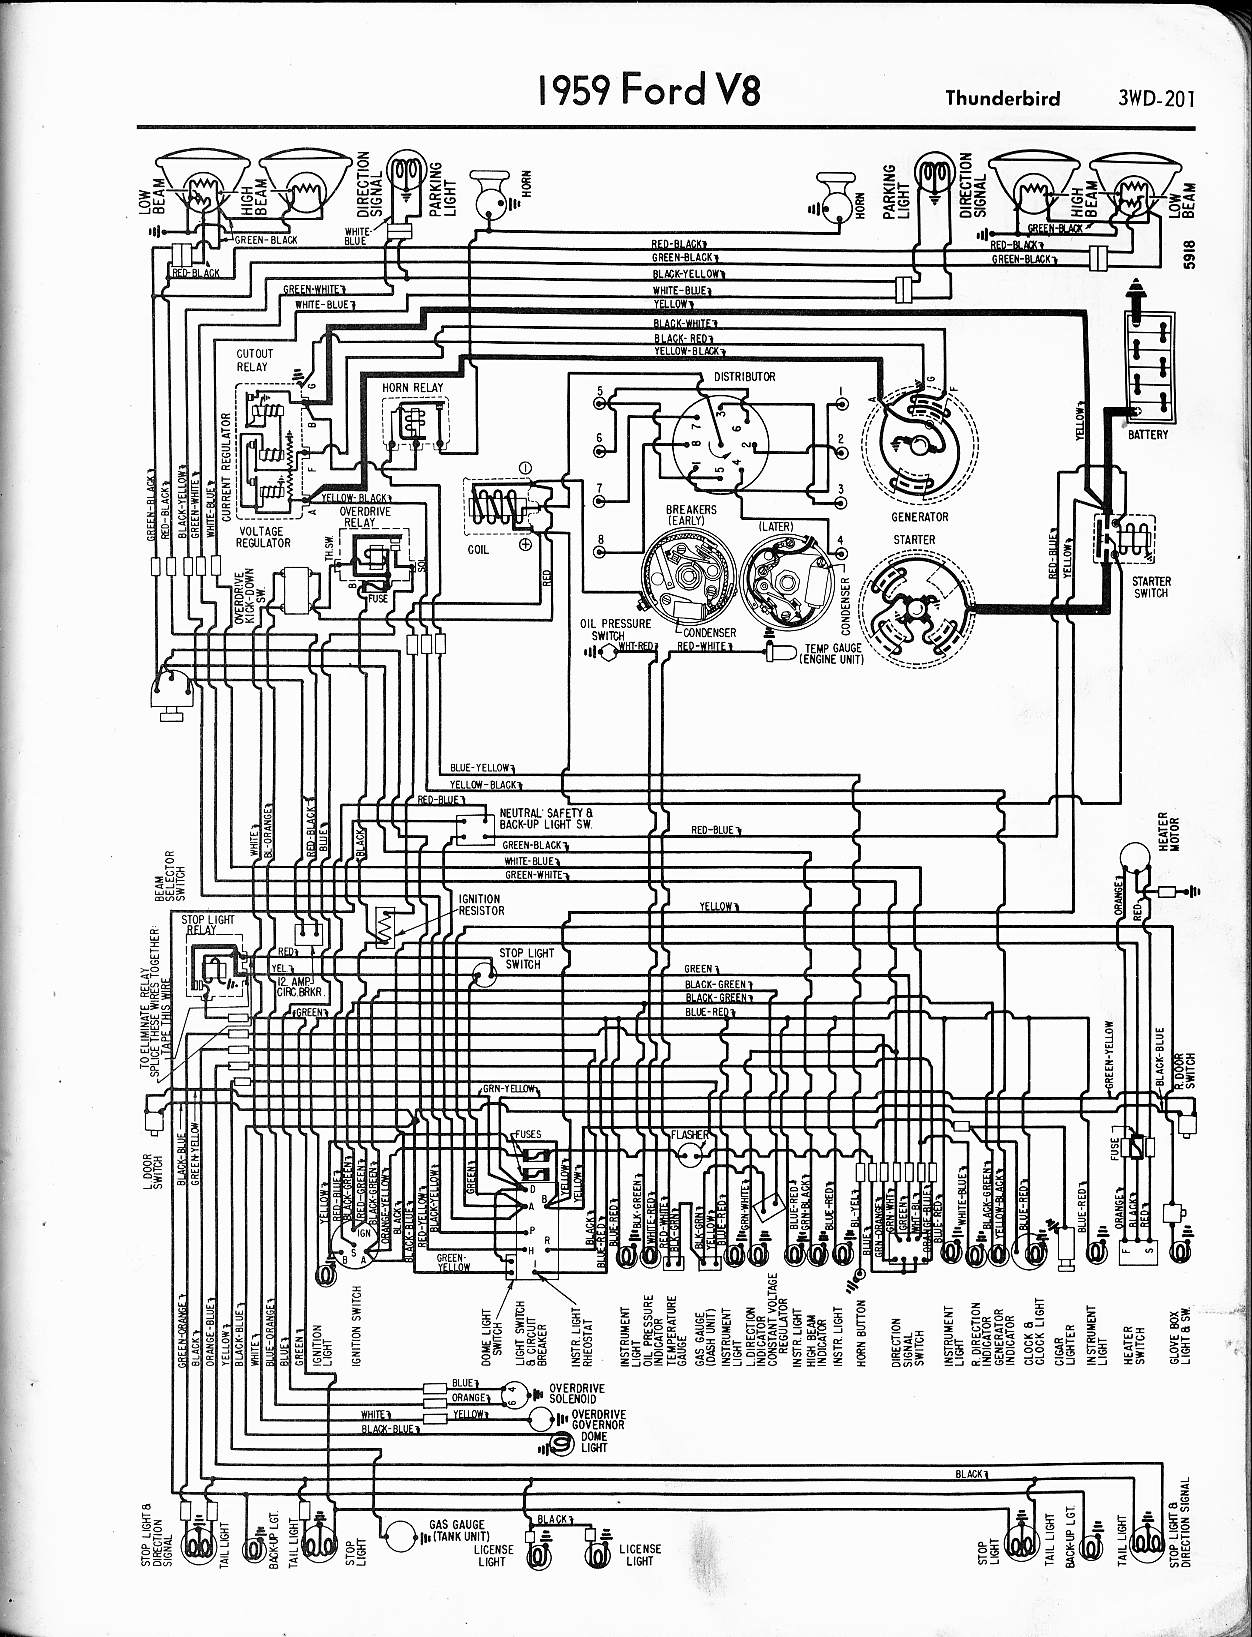 57 65 ford wiring diagrams 56 ford wiring diagram 1957 thunderbird power window wiring diagram #5